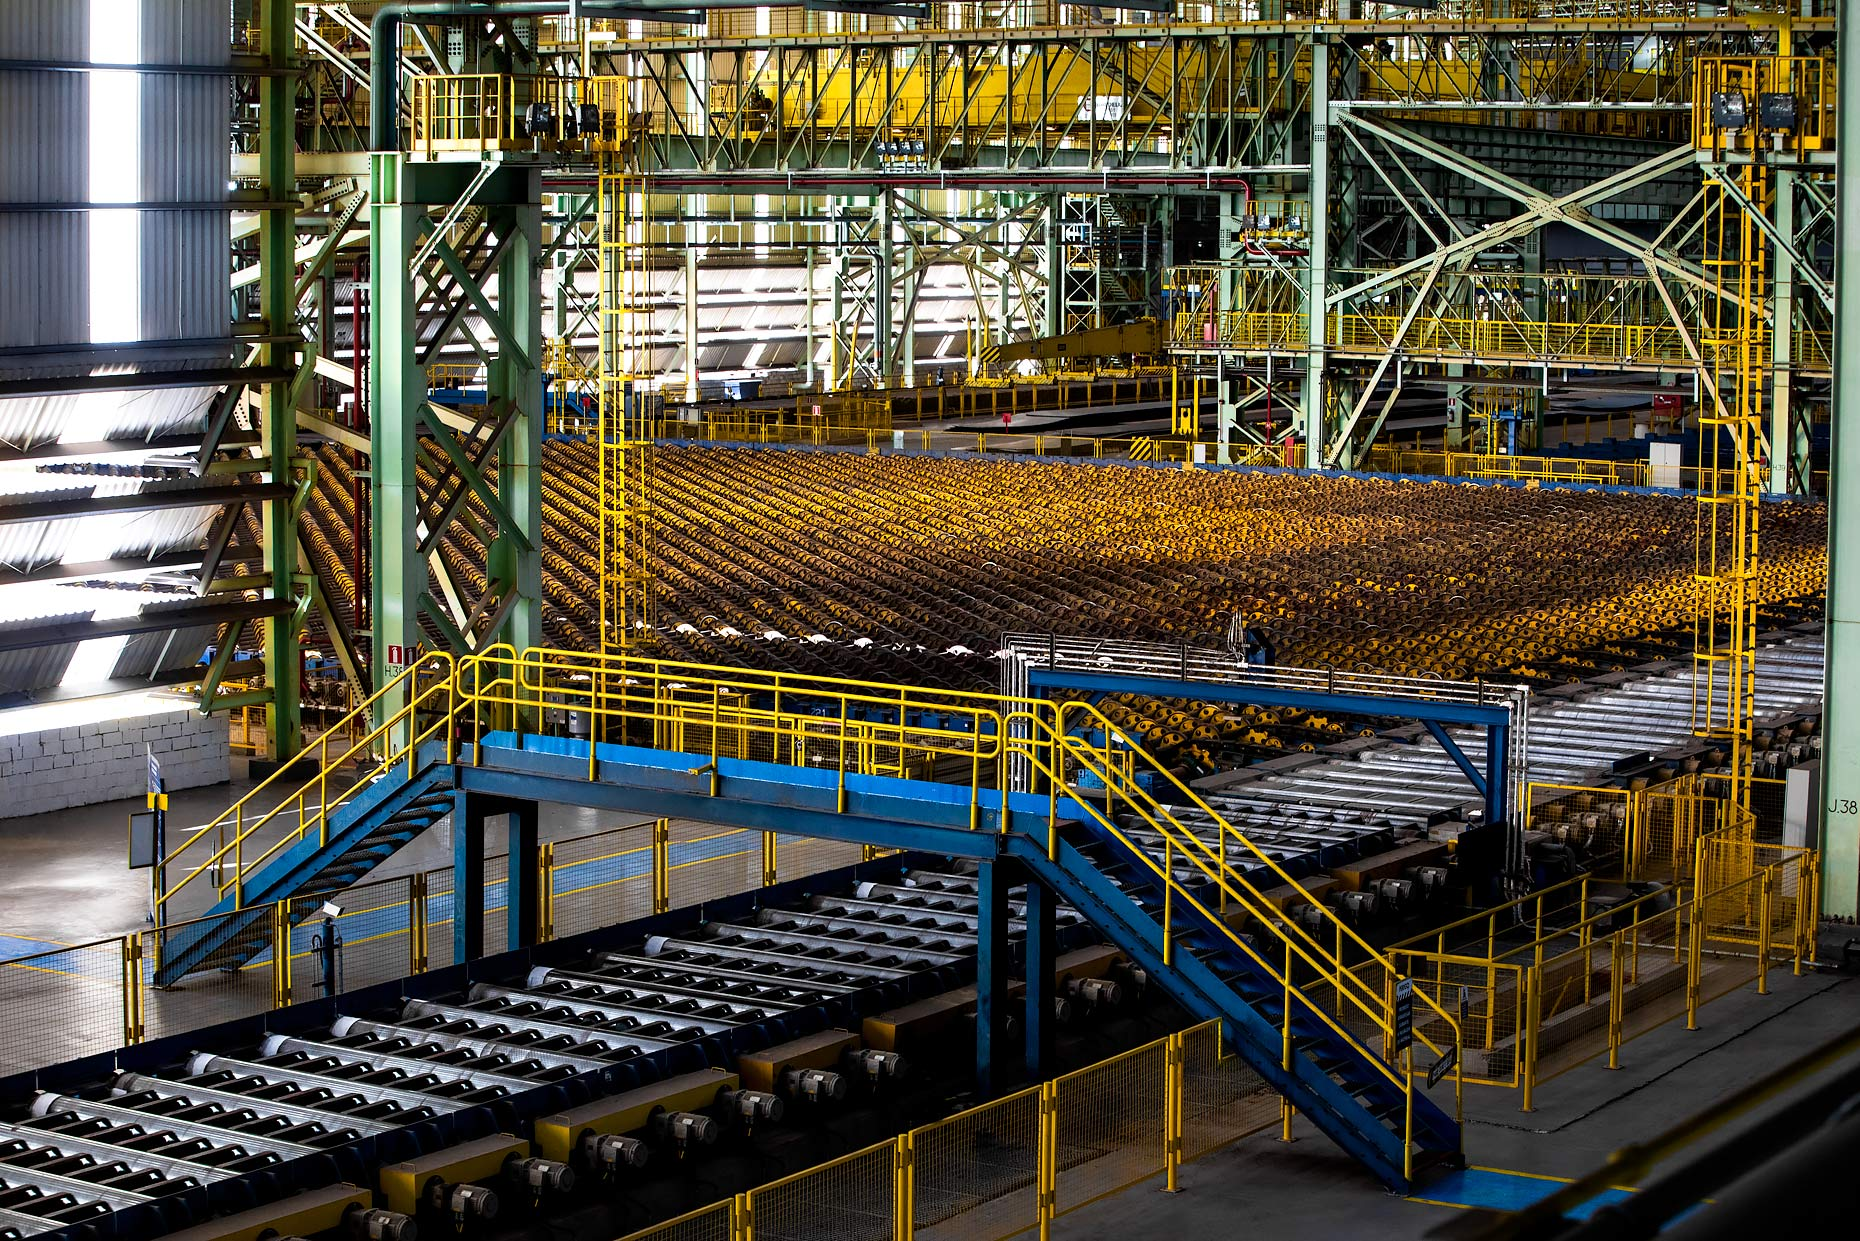 Cold rolling steel production floor |  Scott Gable industrial photographer